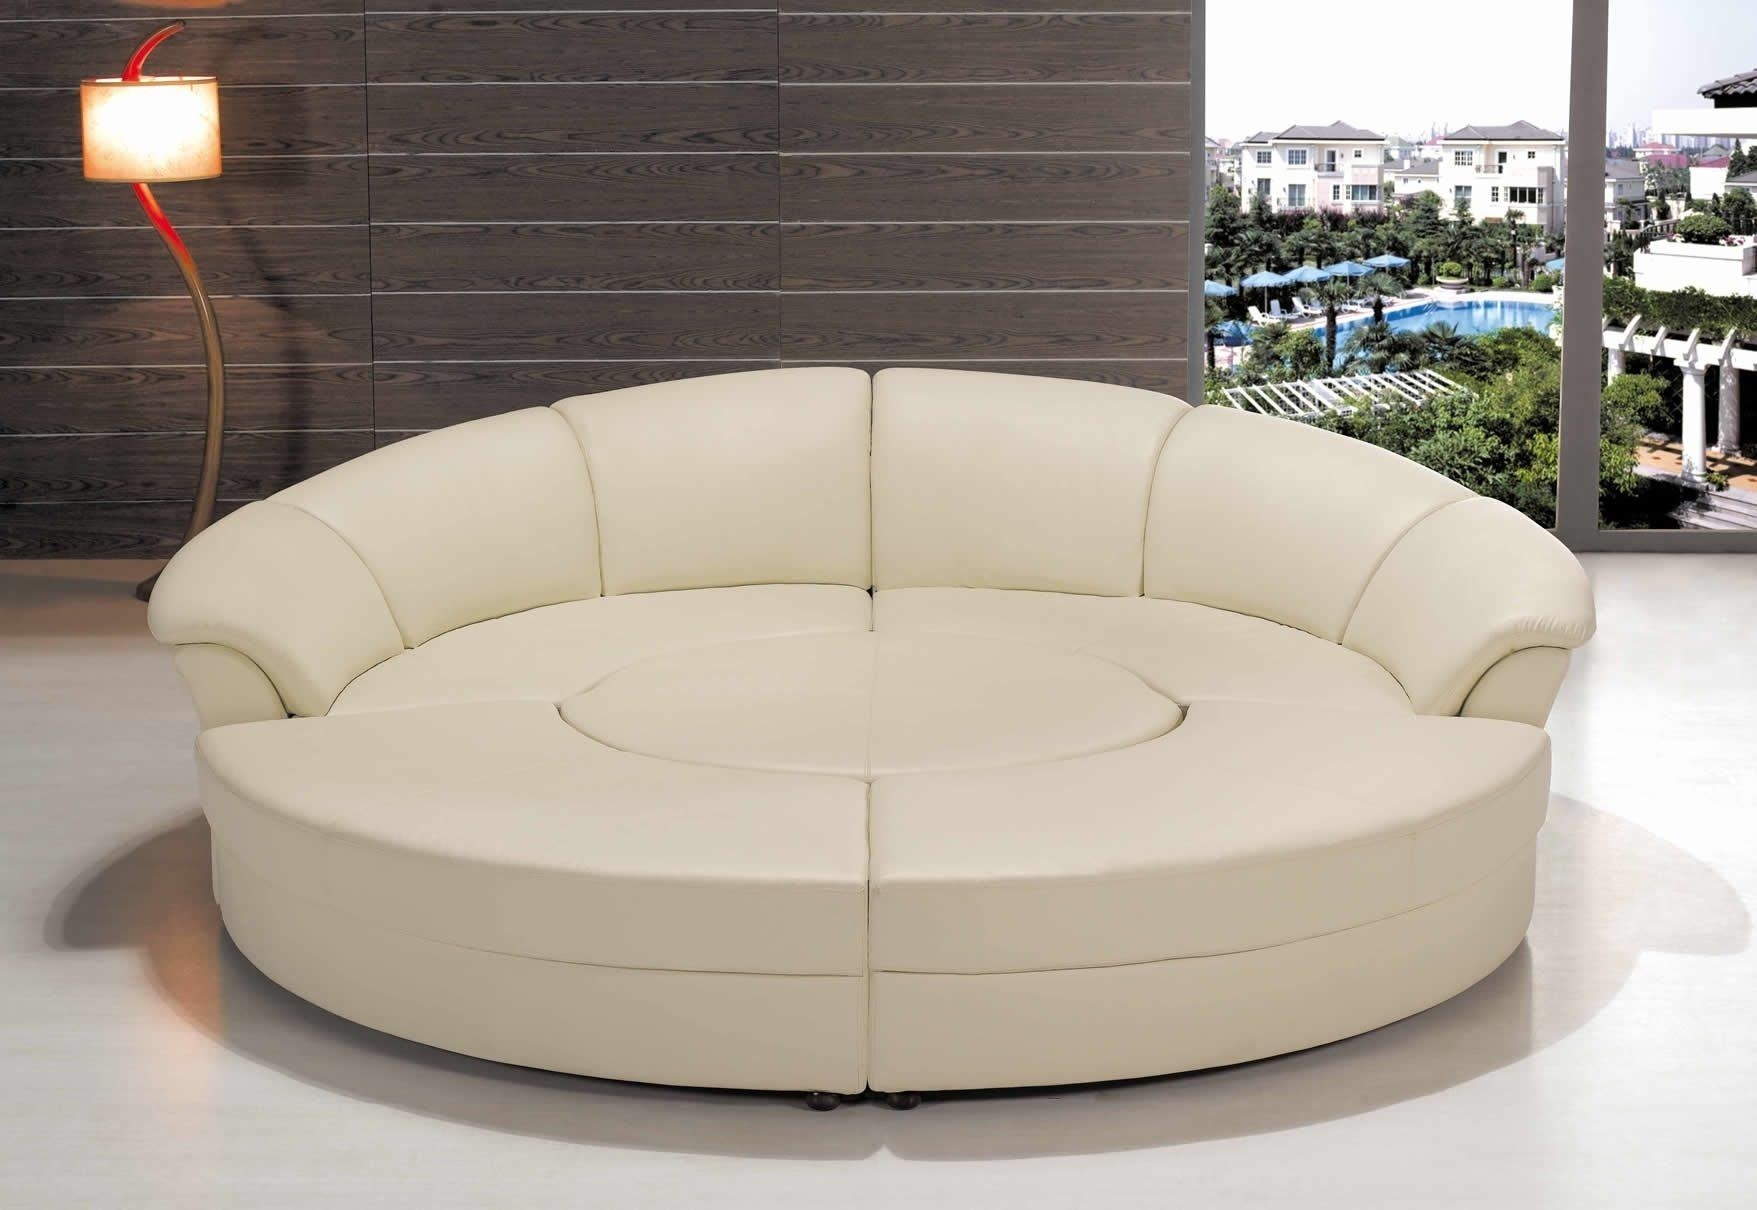 Sofa Round Sectional Bed | Tamingthesat within Round Sectional Sofa Bed